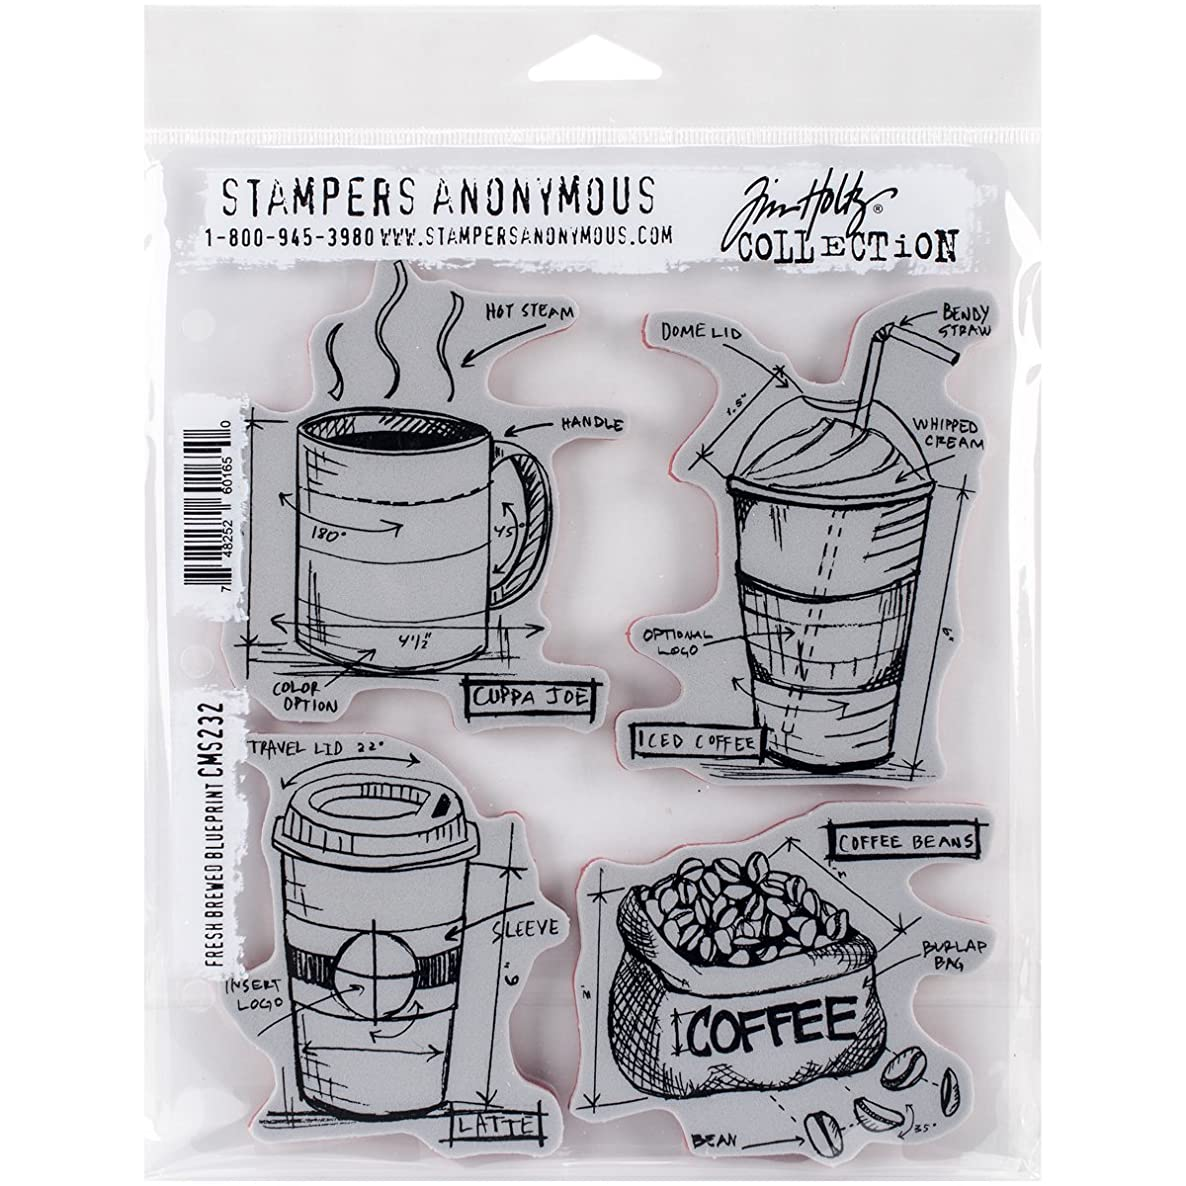 Stampers Anonymous Tim Holtz Cling Rubber Fresh Brewed Blueprint Stamp Set, 7 x 8.5